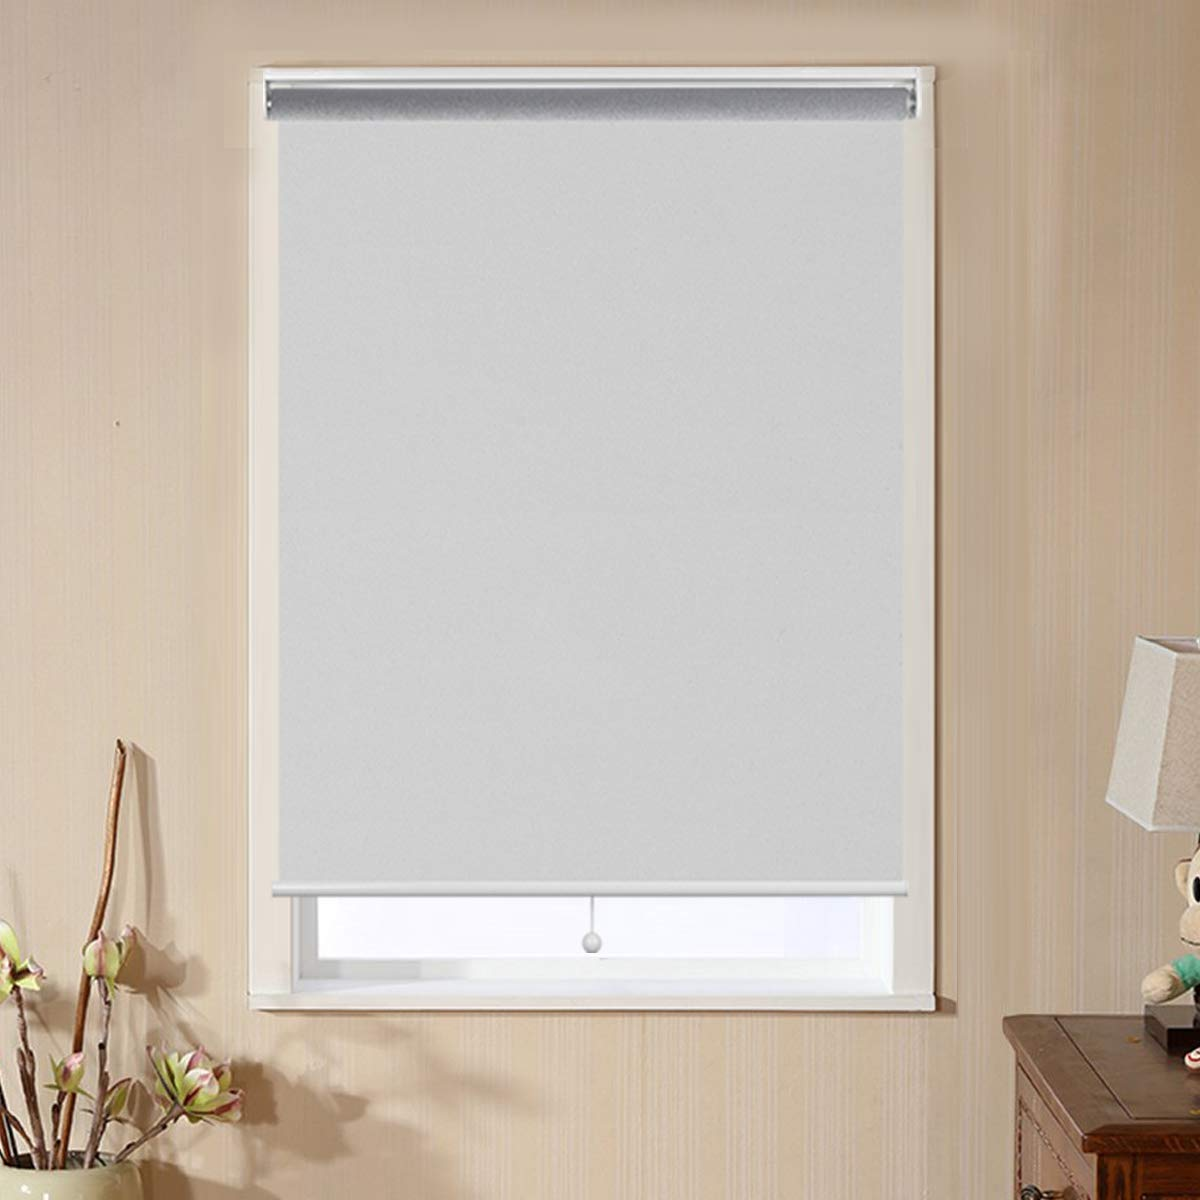 Buy Window Shades For Home Blackout Shades Cordless Blinds For Bedroom Window Shade Roller Shades For Windows White 35 W X 72 H Window Coverings Shades Room Darkening Blinds Online At Low Prices In